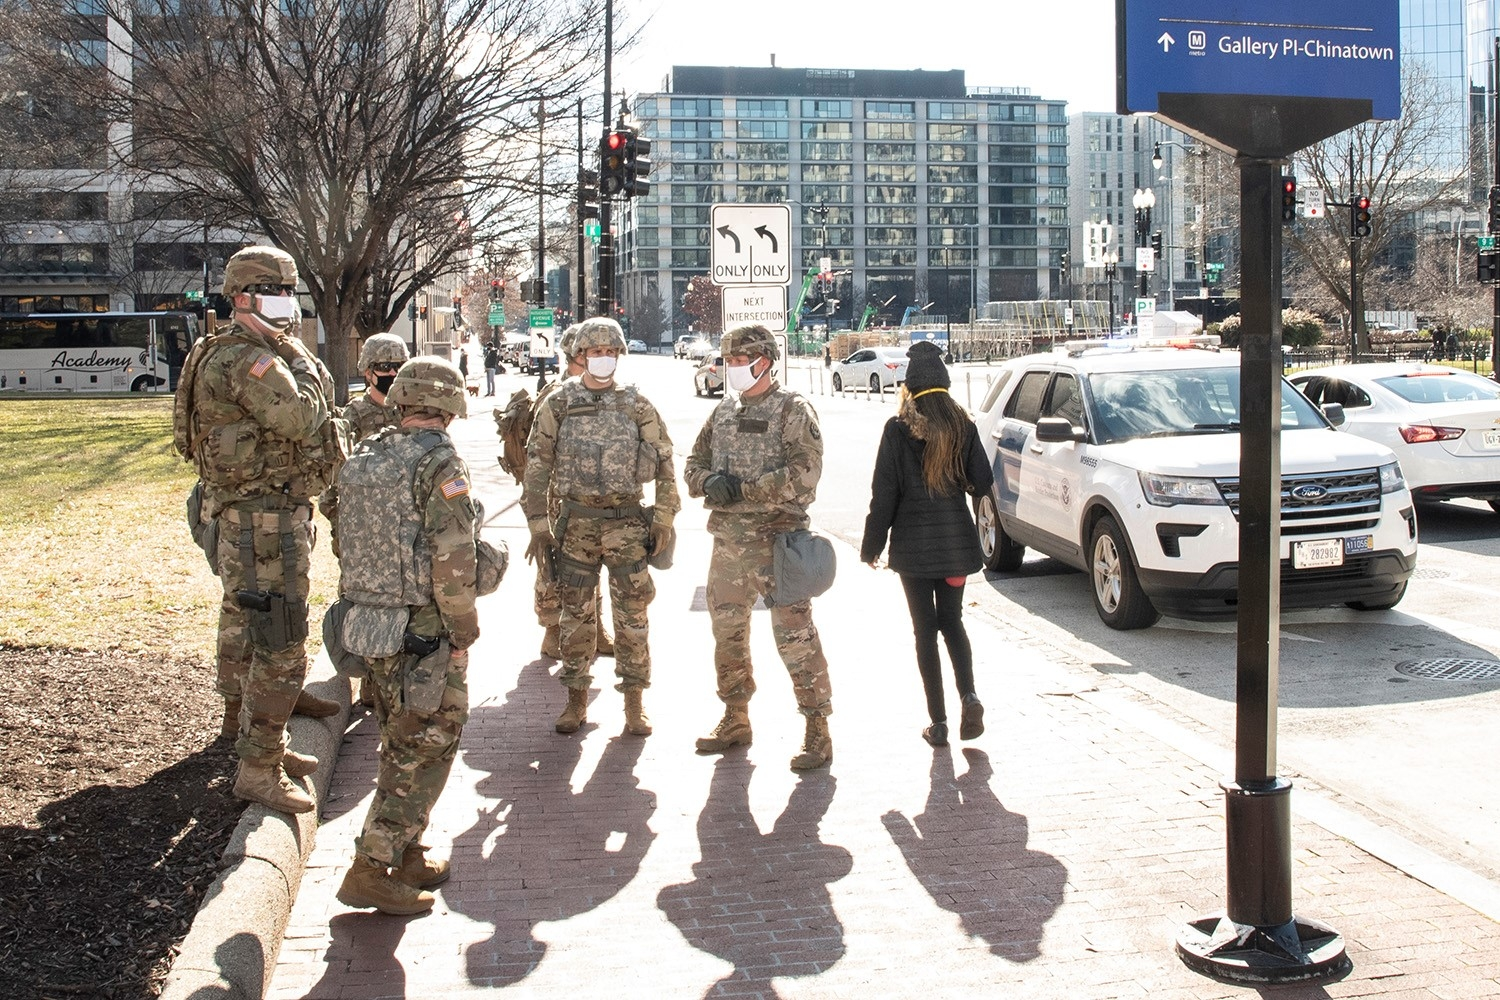 A group of military personal, wearing camoflage fatigues, stands on a sidewalk near an active street in downton Washington, D.C. A woman wearing a black jacket, pants, and hat, walks past them.